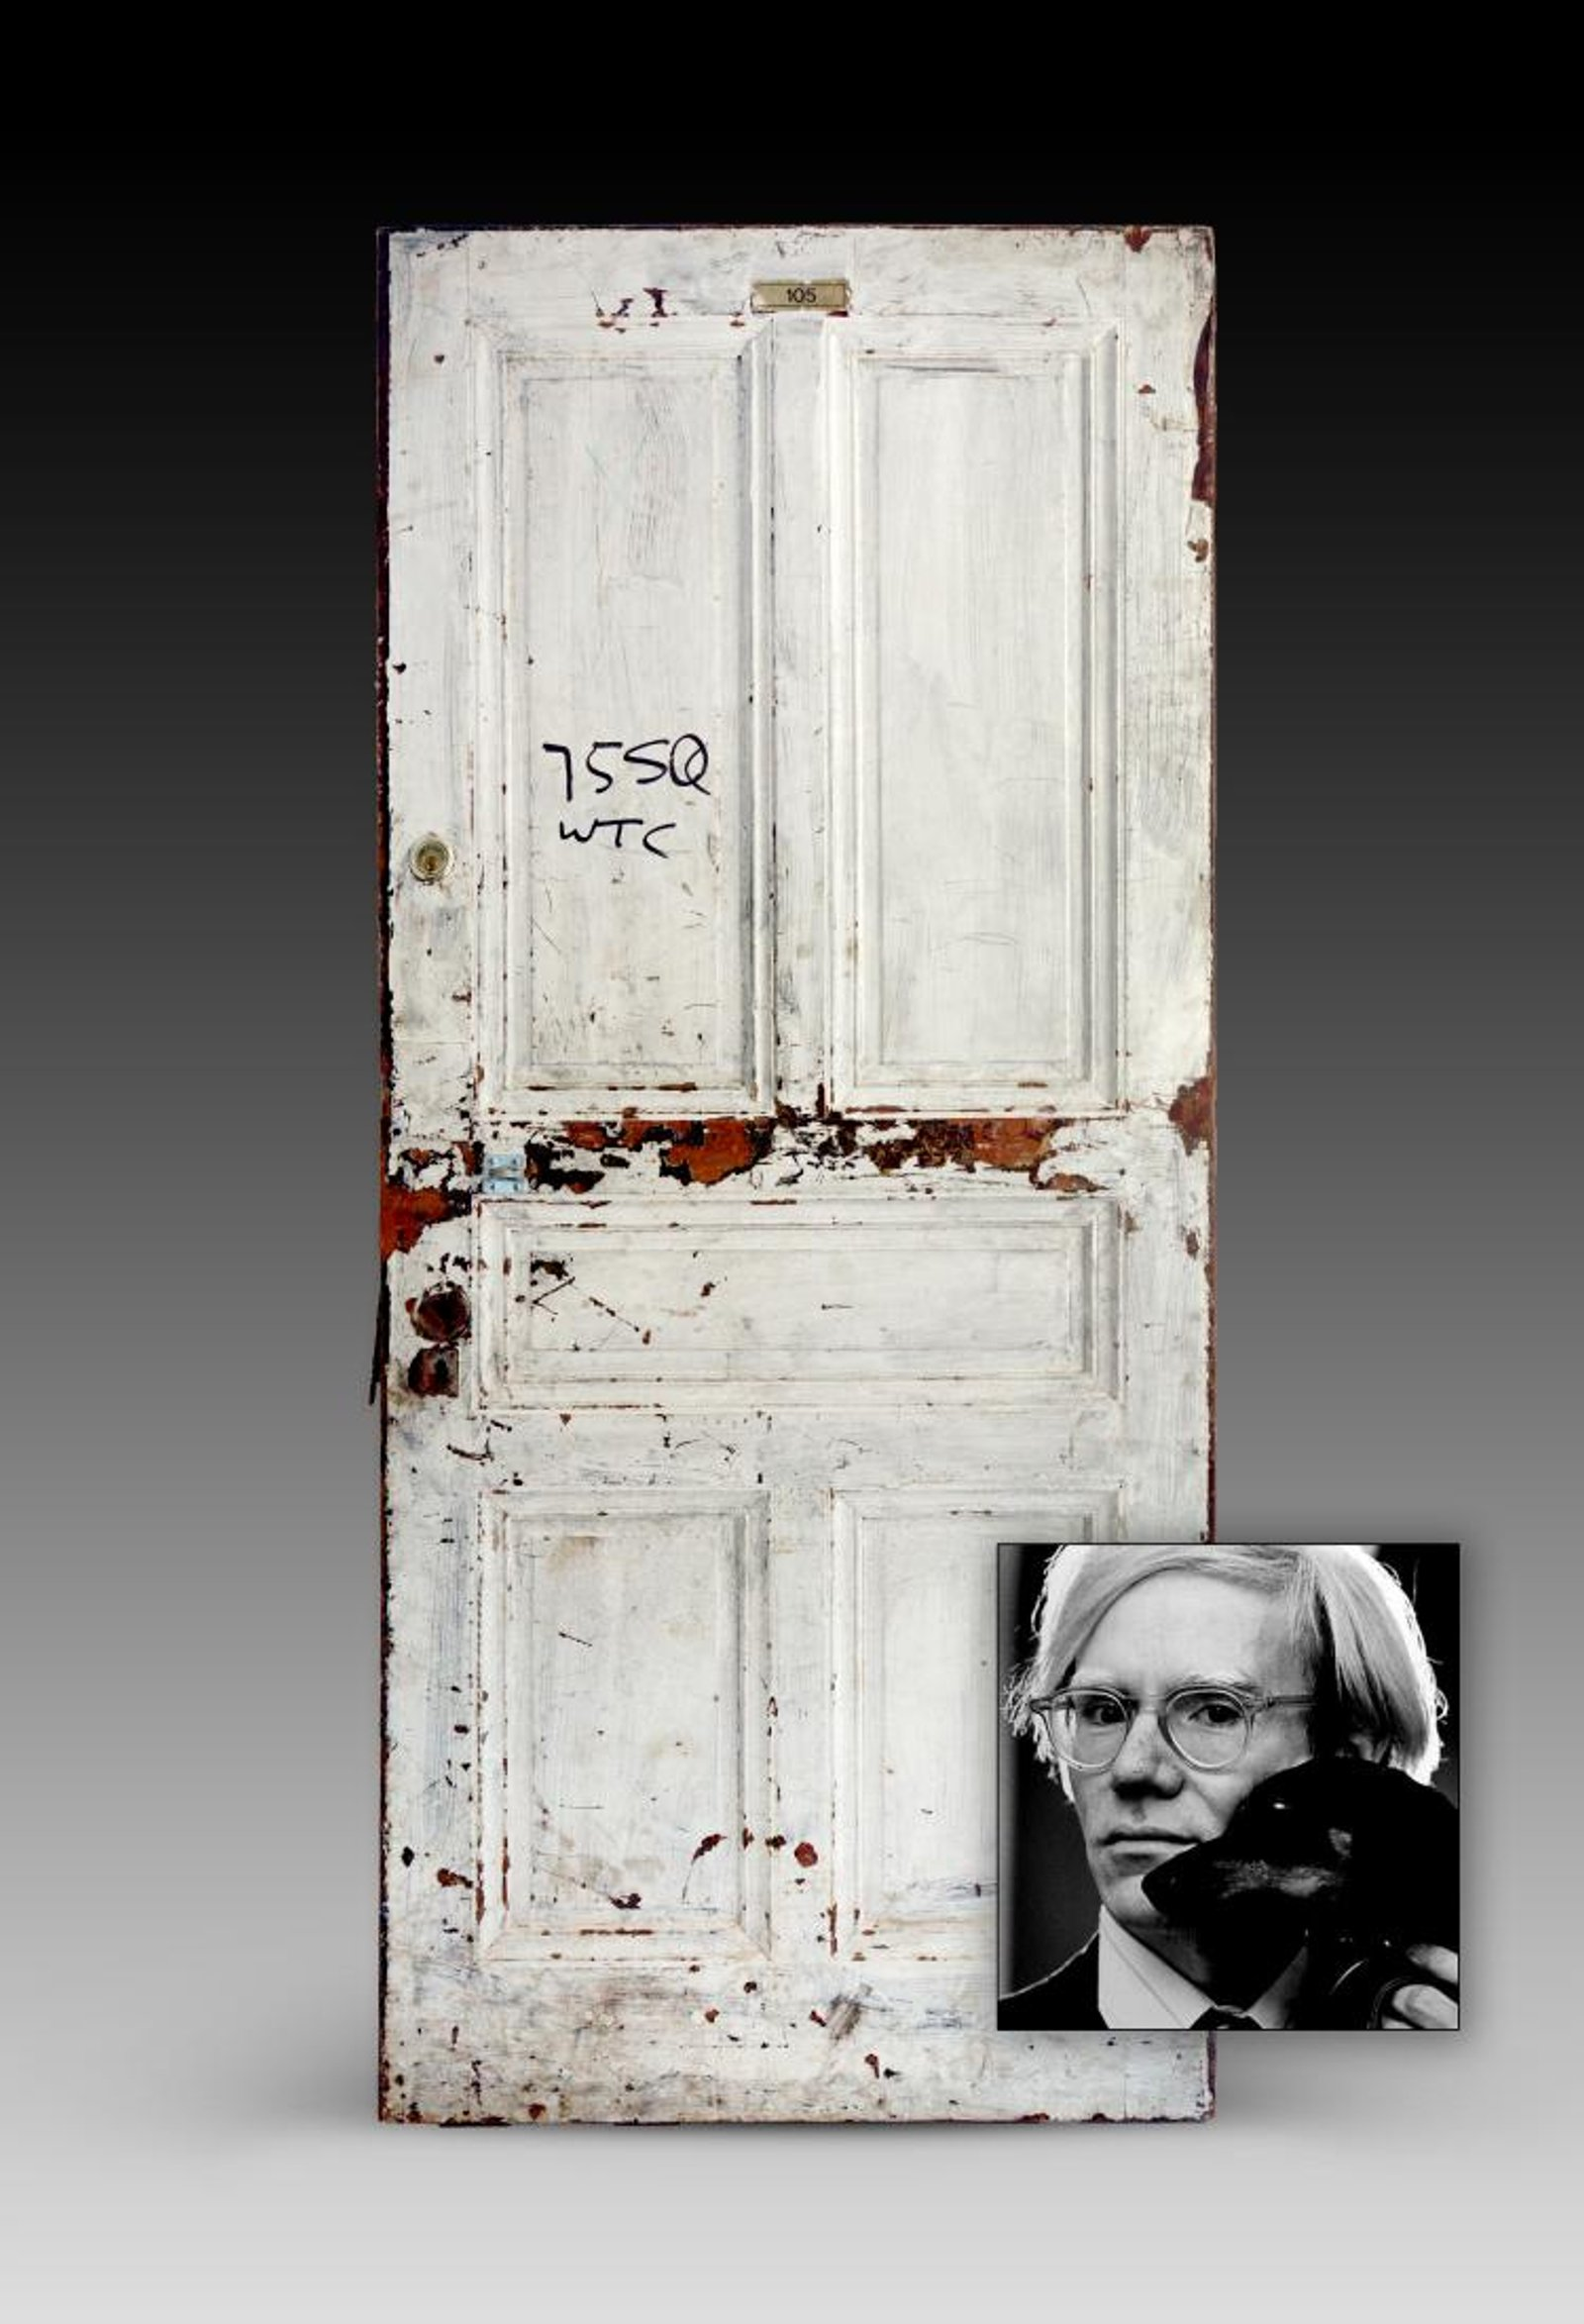 Andy Warhol's Chelsea Hotel door. Image courtesy of Guernsey's